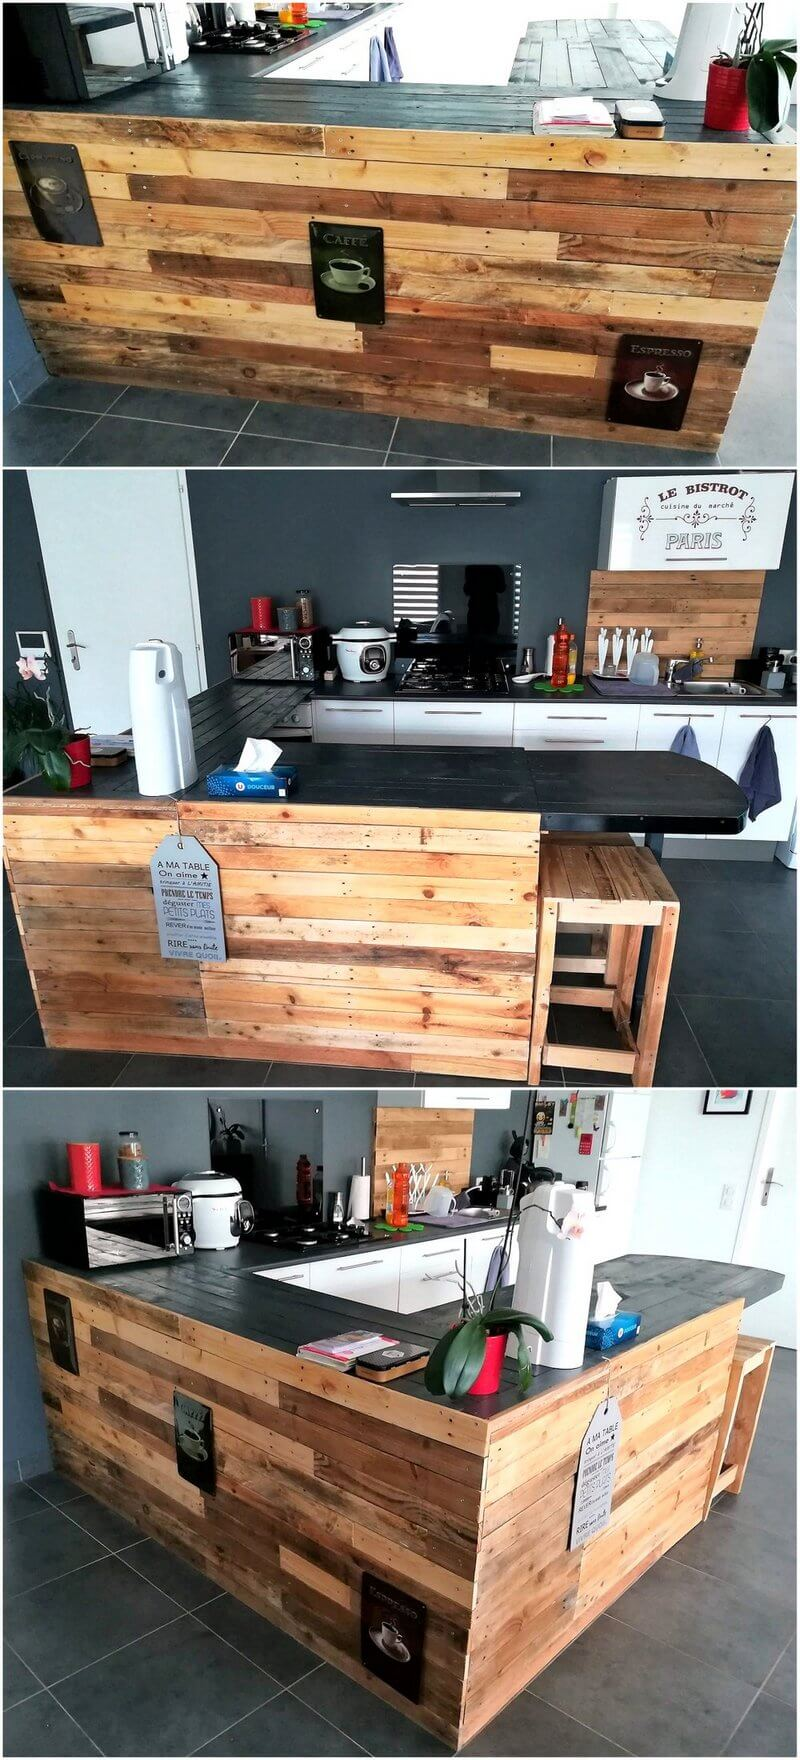 pallet kitchen plan